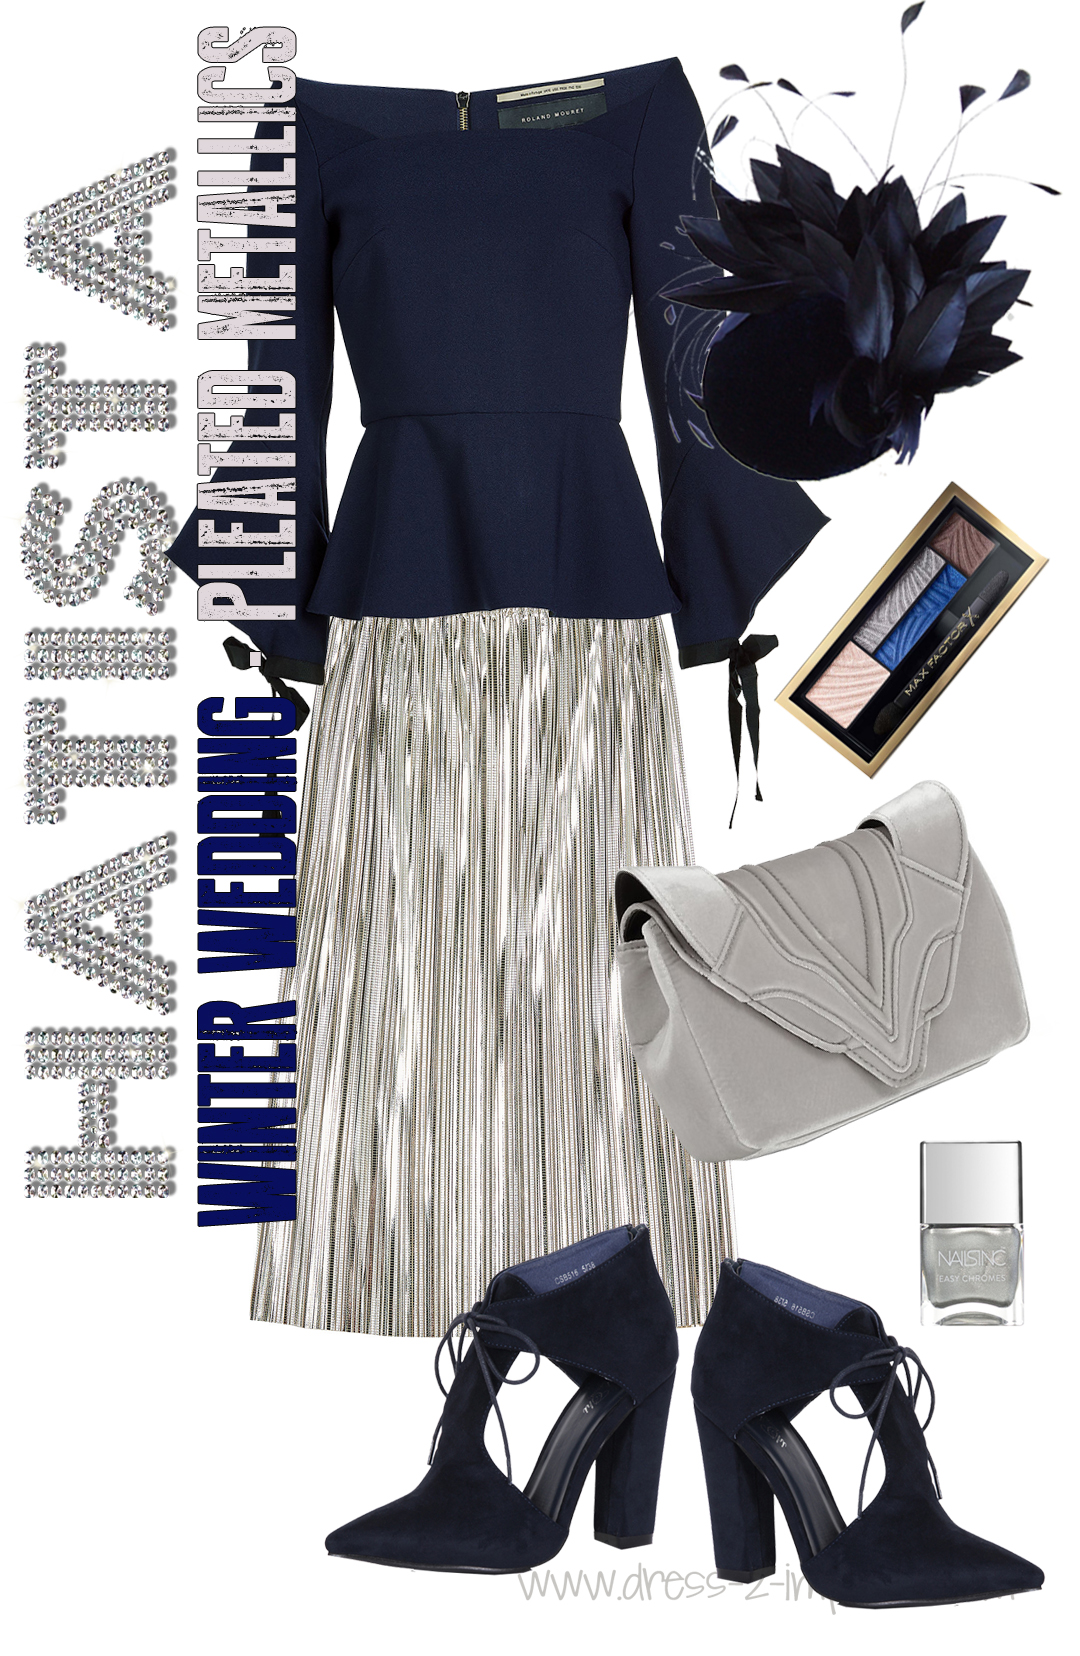 Winter Wedding Outfit Inspiration Pleated Metallic Skirt. Navy and Silver Outfit. What to wear to a christmas wedding. Winter wedding guest outfits. What to wear to a winter wedding #weddings #motherofthebride #weddingguest #outfits #outfitideas #ootd #outfits